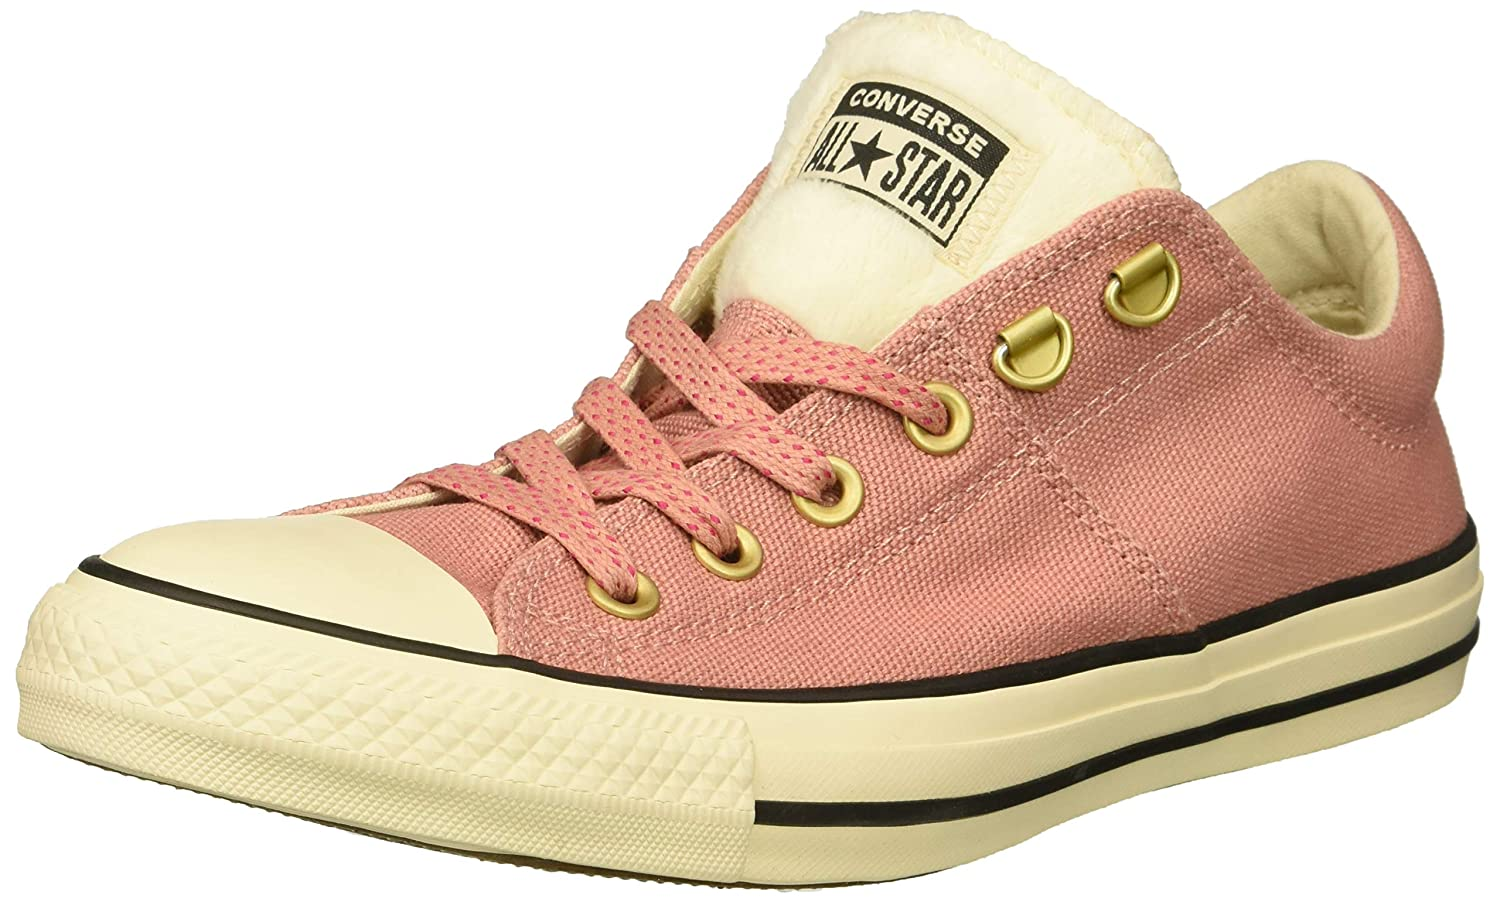 Converse Chuck Taylor All Star Madison Sneakers in Green